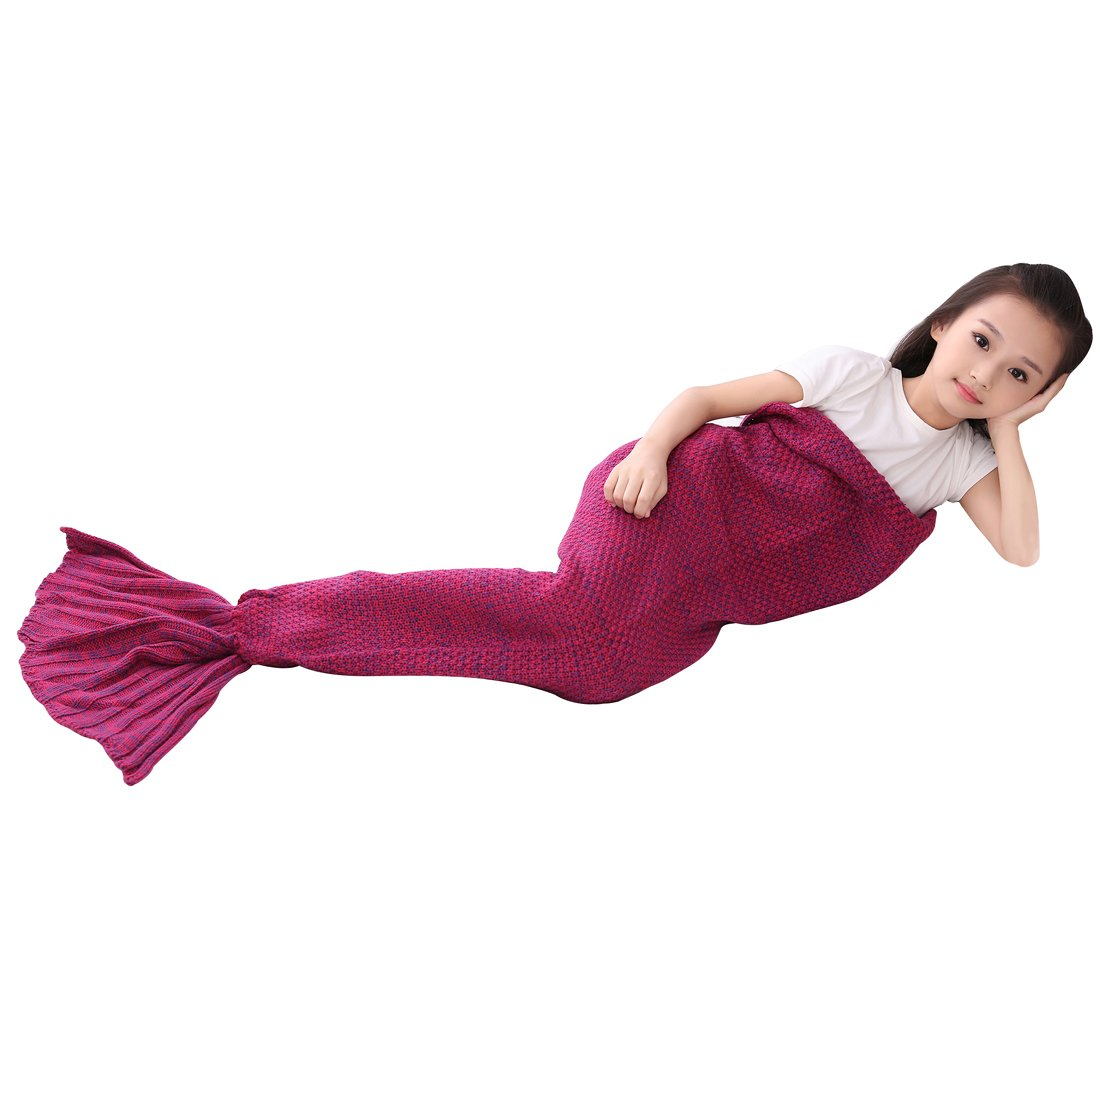 Roluck Mermaid Tail Blanket Handmade Warm Keeper Autumn Winter Blanket for Girls (Rose Red) by Roluck (Image #2)